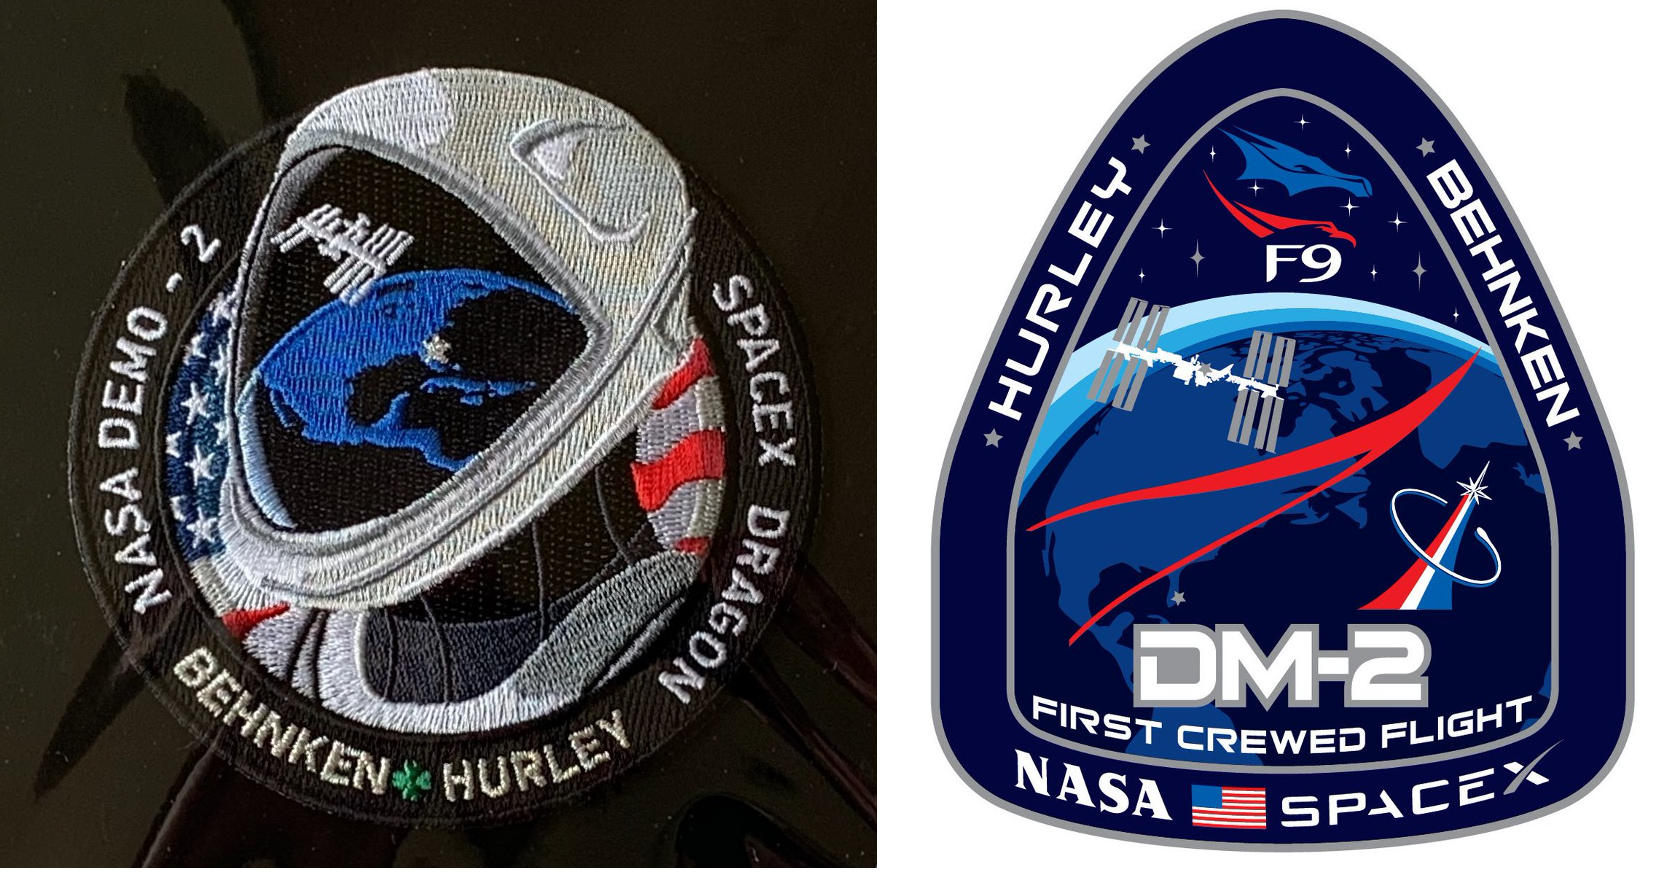 Space X and NASA mission logos